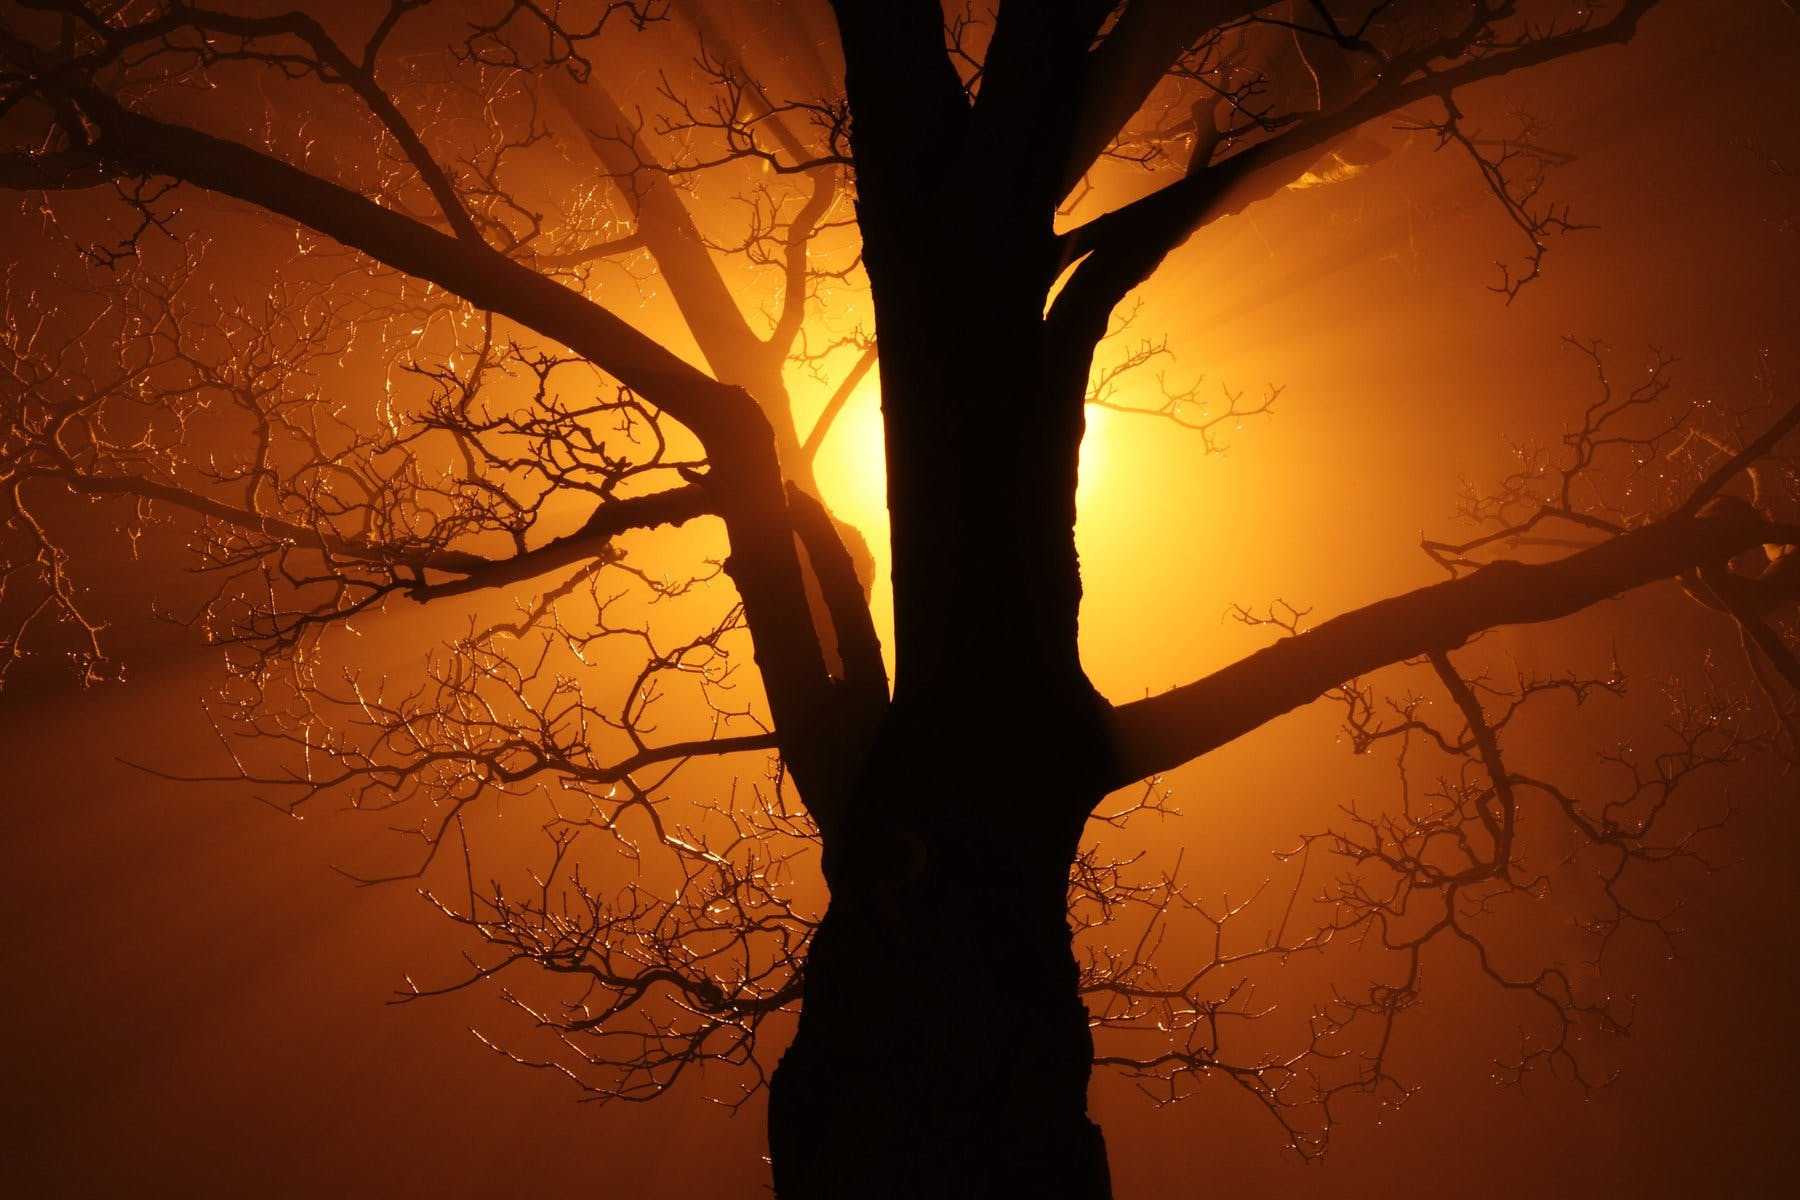 Stock-Sunset-tree-nature-branch-silhouette-light-abstract-1159692-pxhere.com.jpg